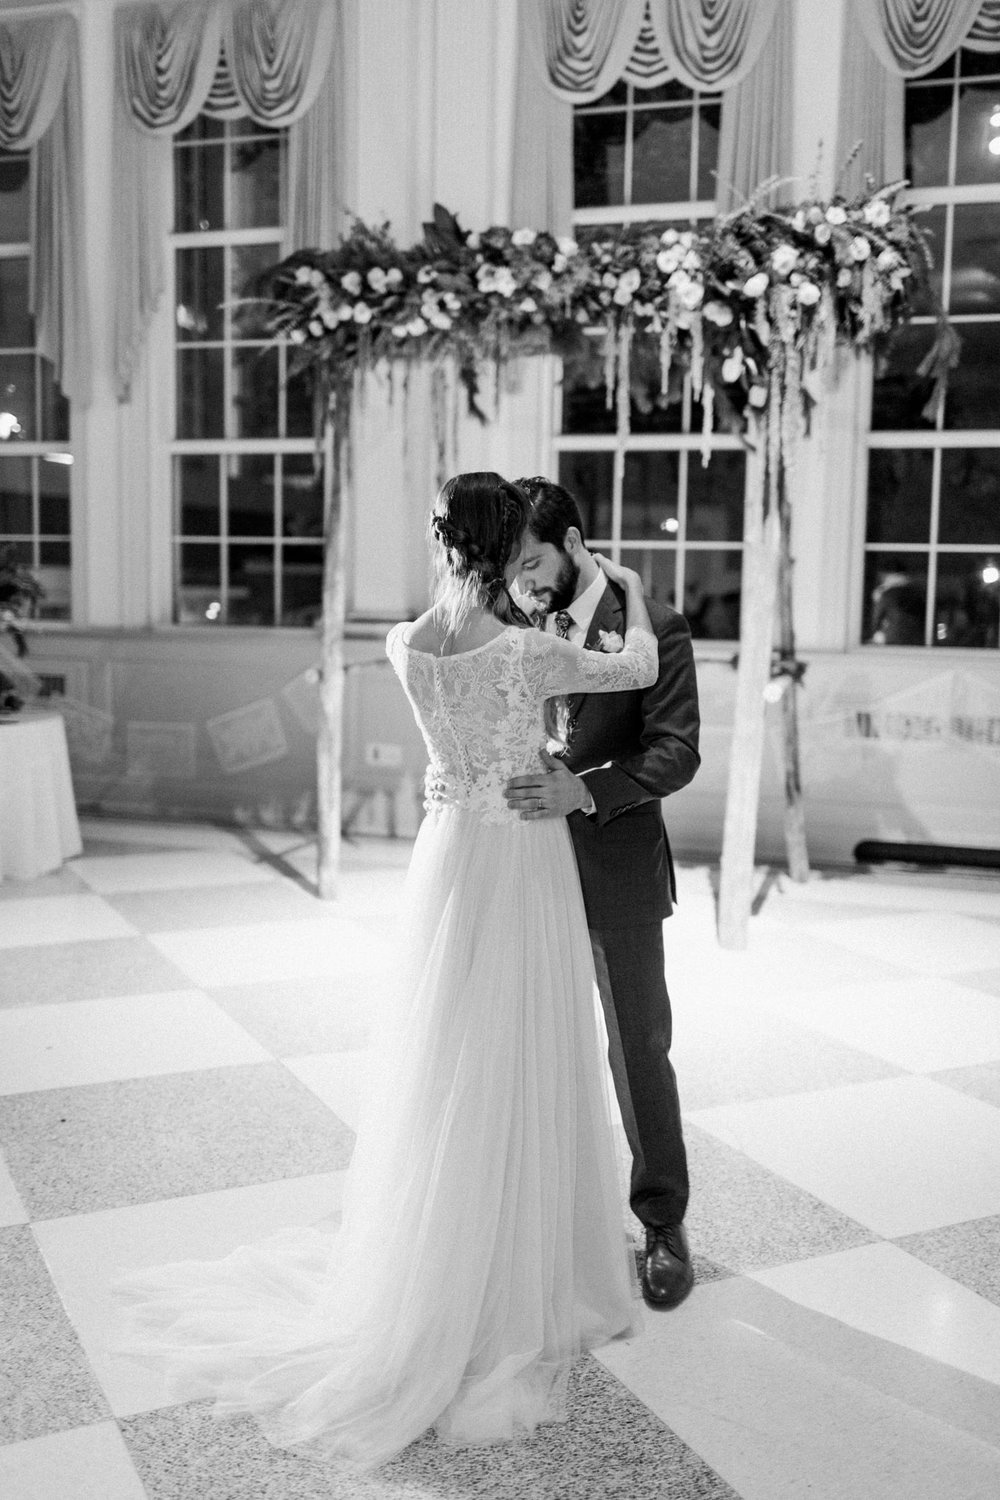 denton-wedding-photographer-twu-44.jpg